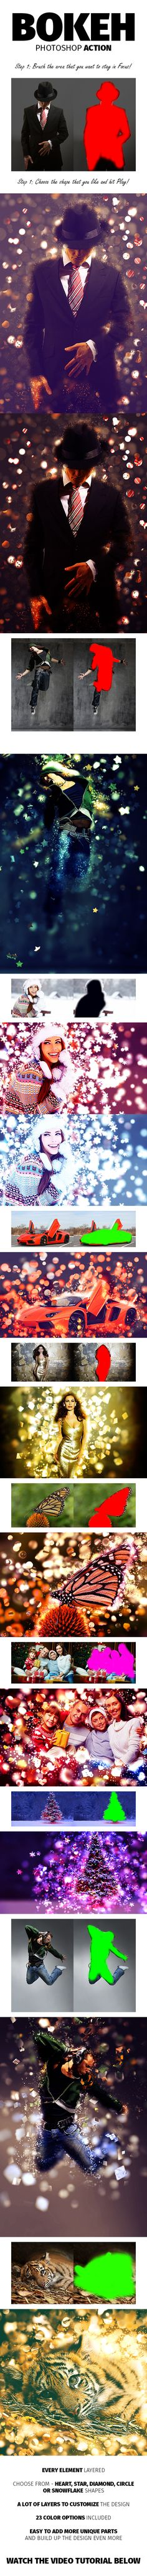 Bokeh Photoshop Action #photoeffects #actions Download: http://graphicriver.net/item/bokeh-photoshop-action/9724816?ref=ksioks